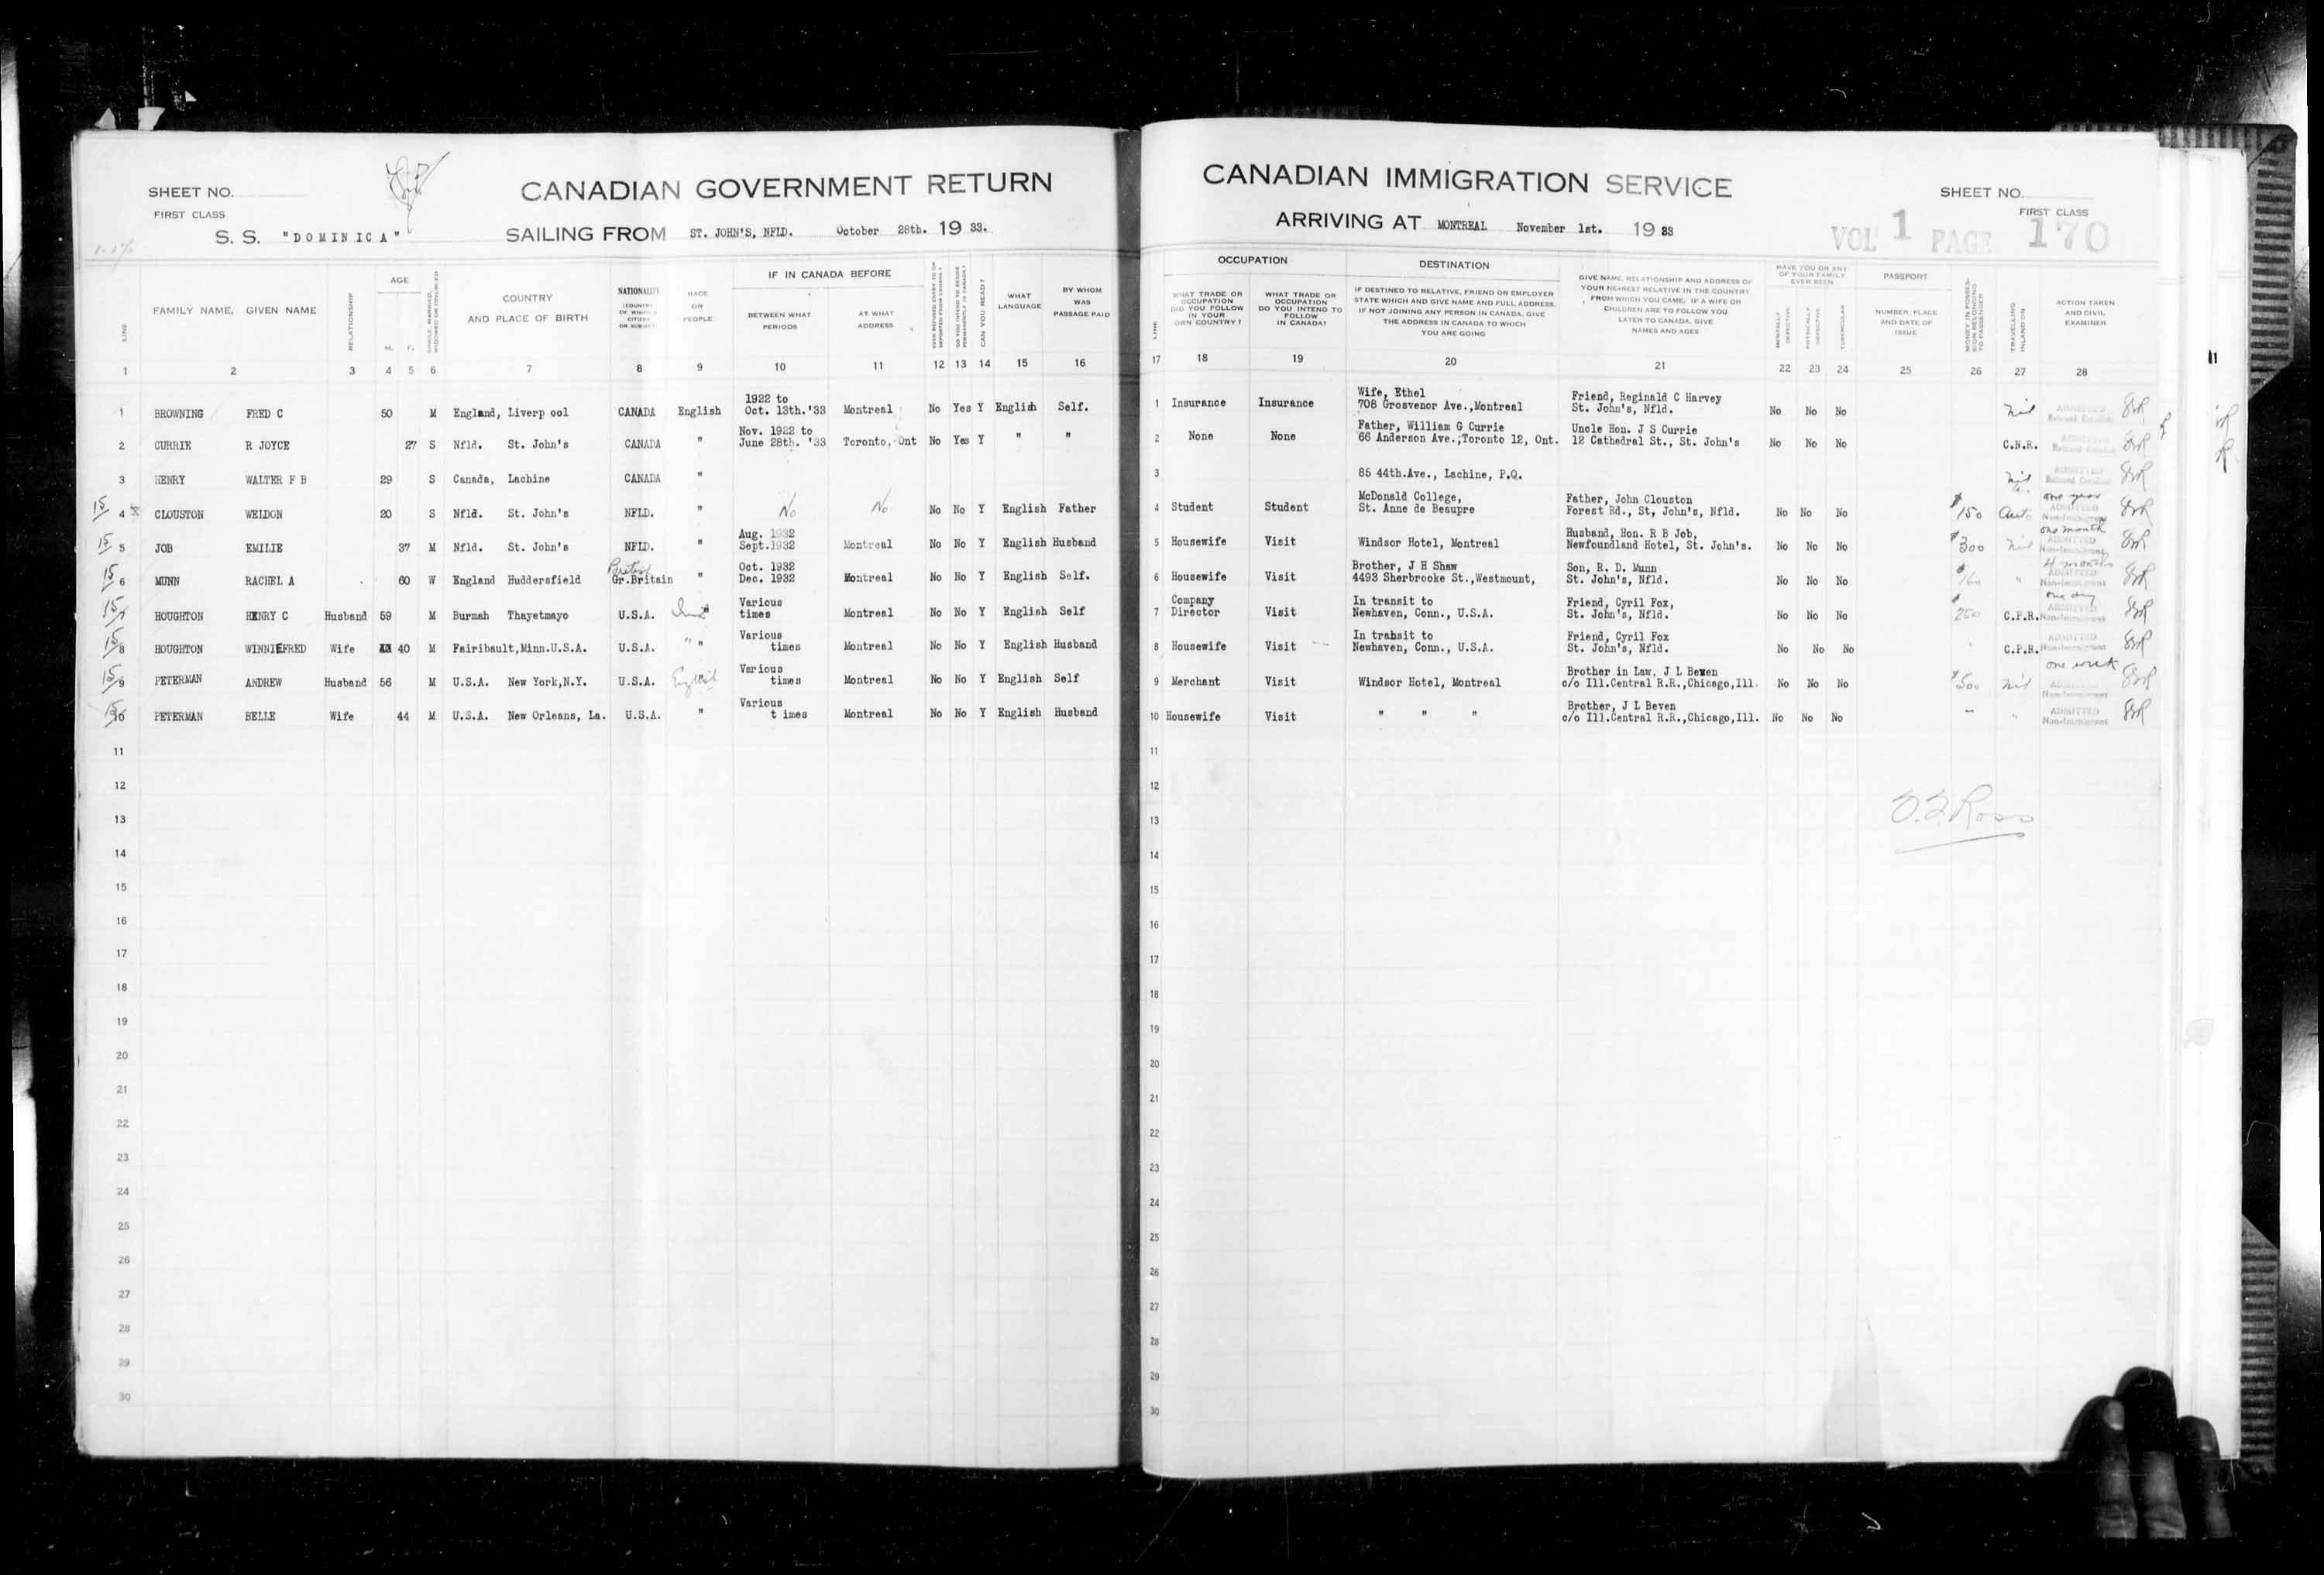 Title: Passenger Lists: Montreal (1925-1935) - Mikan Number: 134839 - Microform: t-14913